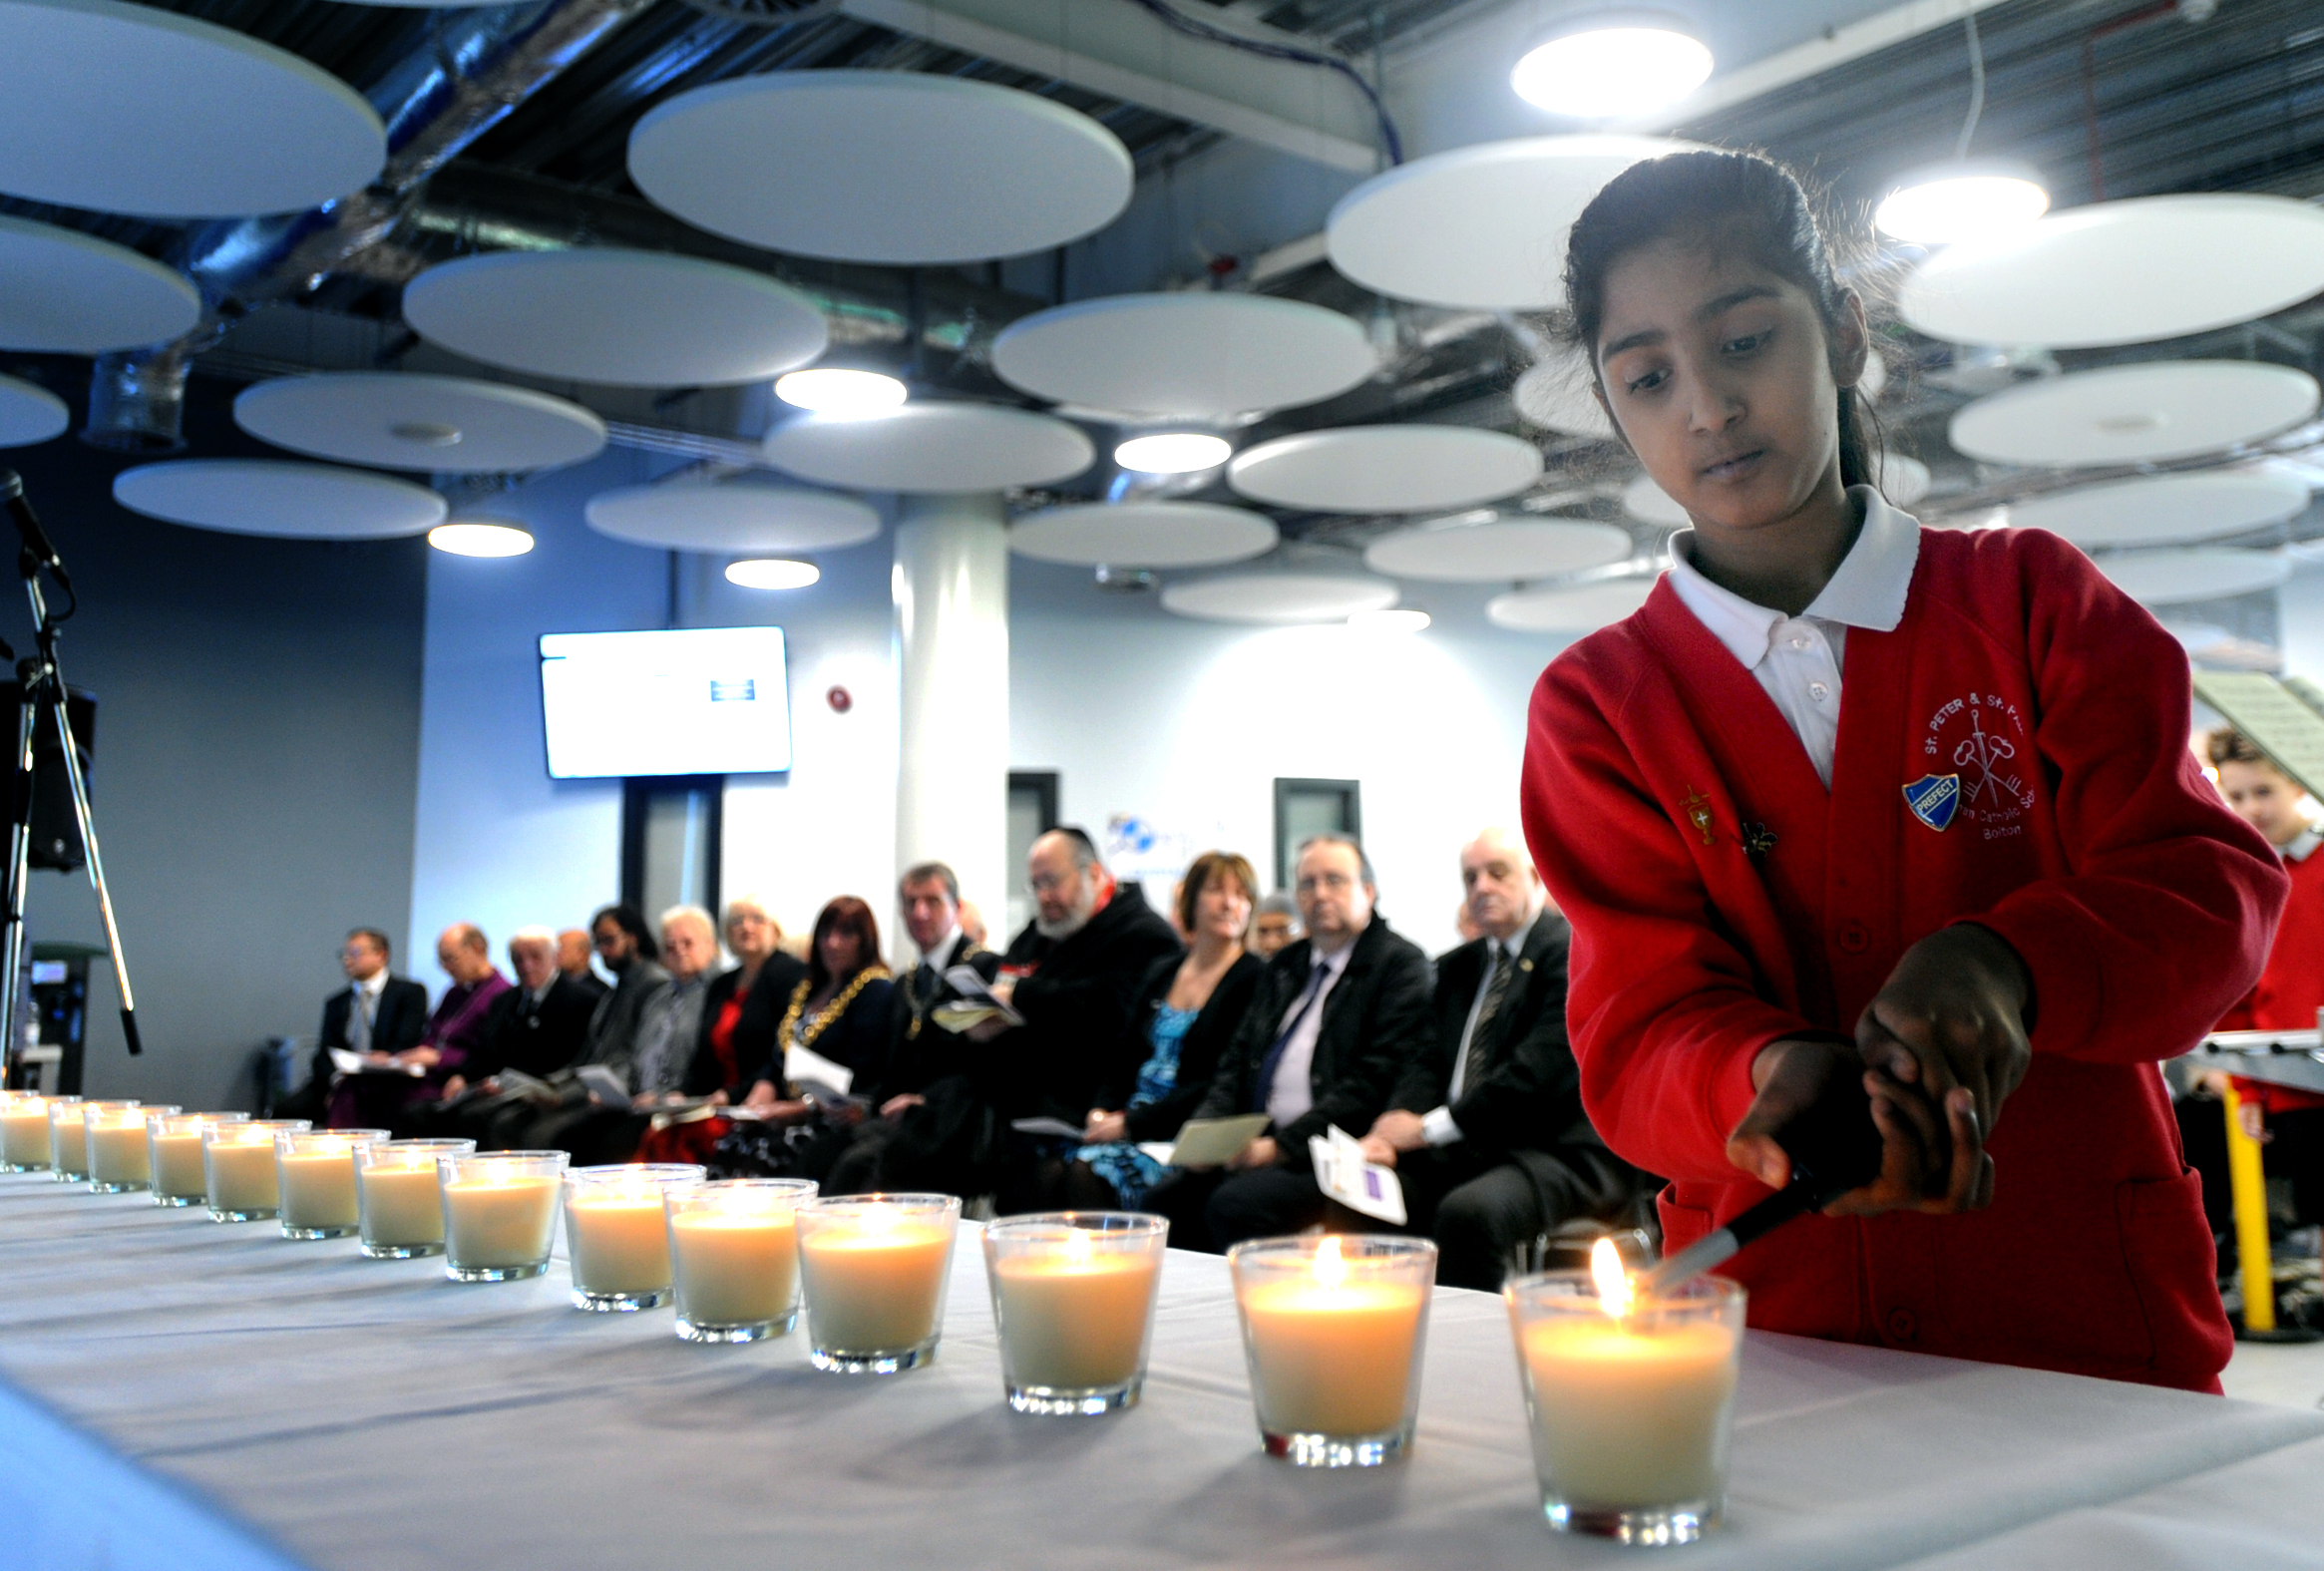 Angel Stephen aged 10 from St Peter and St Pauls CE School lights a candle at the Holocaust Memorial Day event at Bolton UTC.